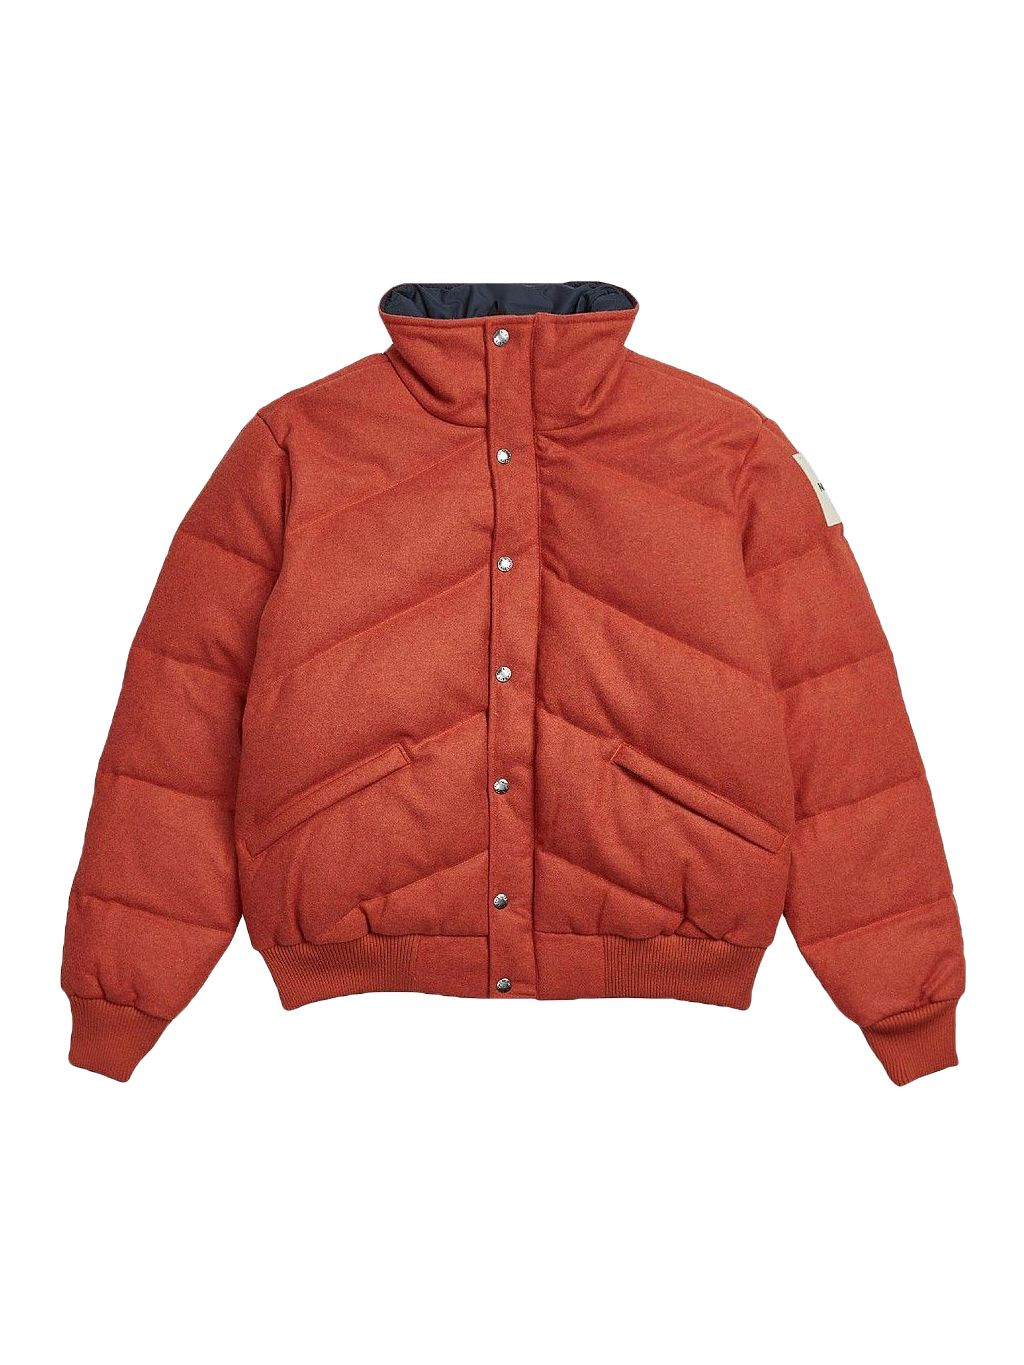 Red Larkspur Jacket